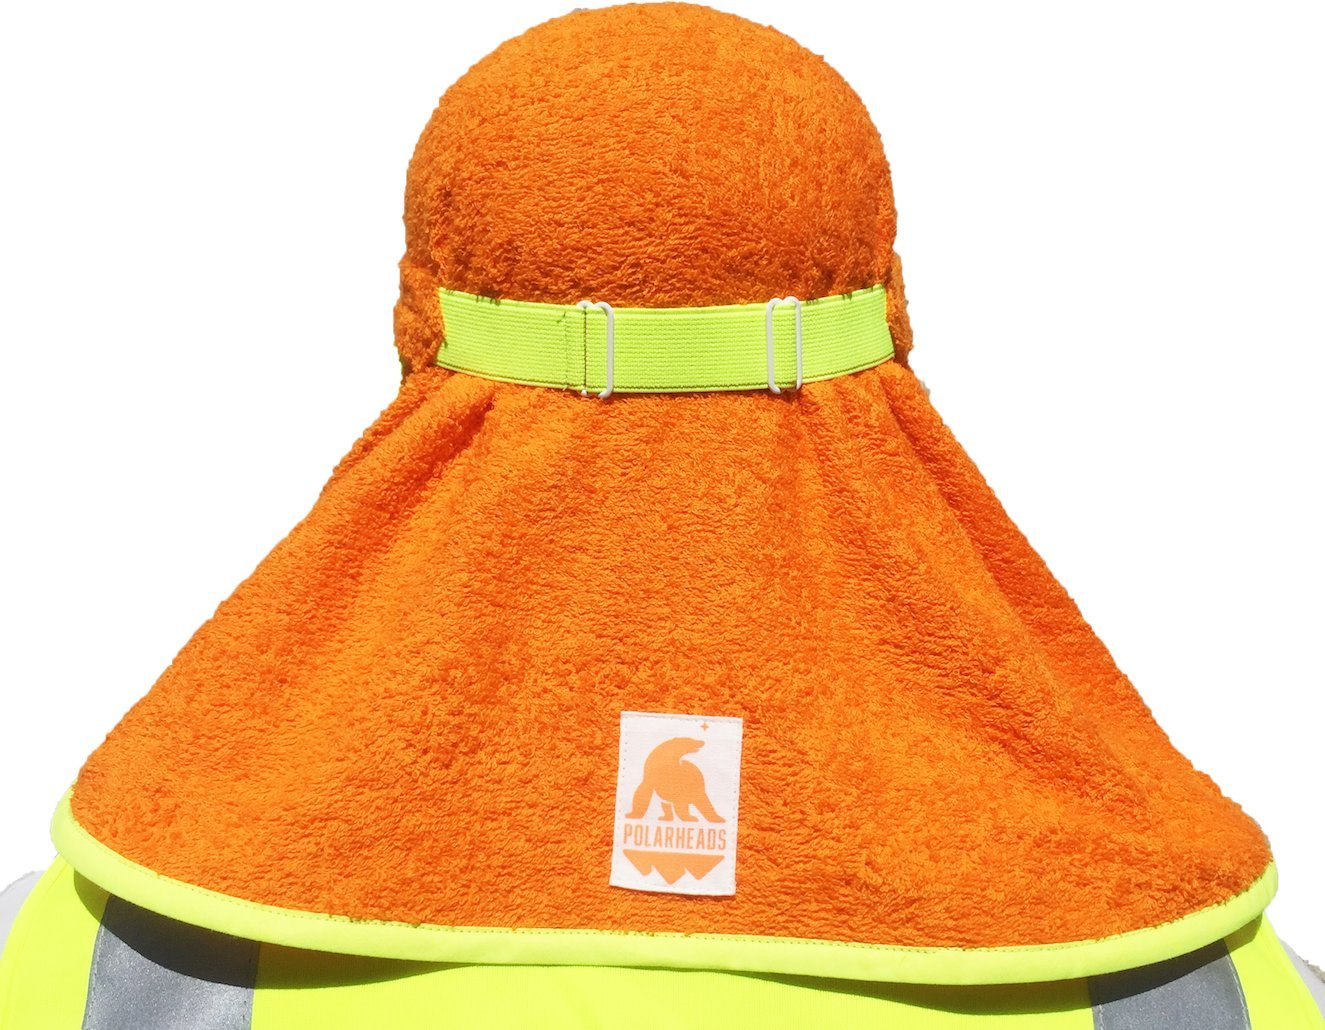 Polarheads 3-in-1 Hard Hat Sun Shade, Sweatband and Cooling Towel. Prevent Heat Stress and improve Hard Hat comfort. by Polarheads (Image #2)